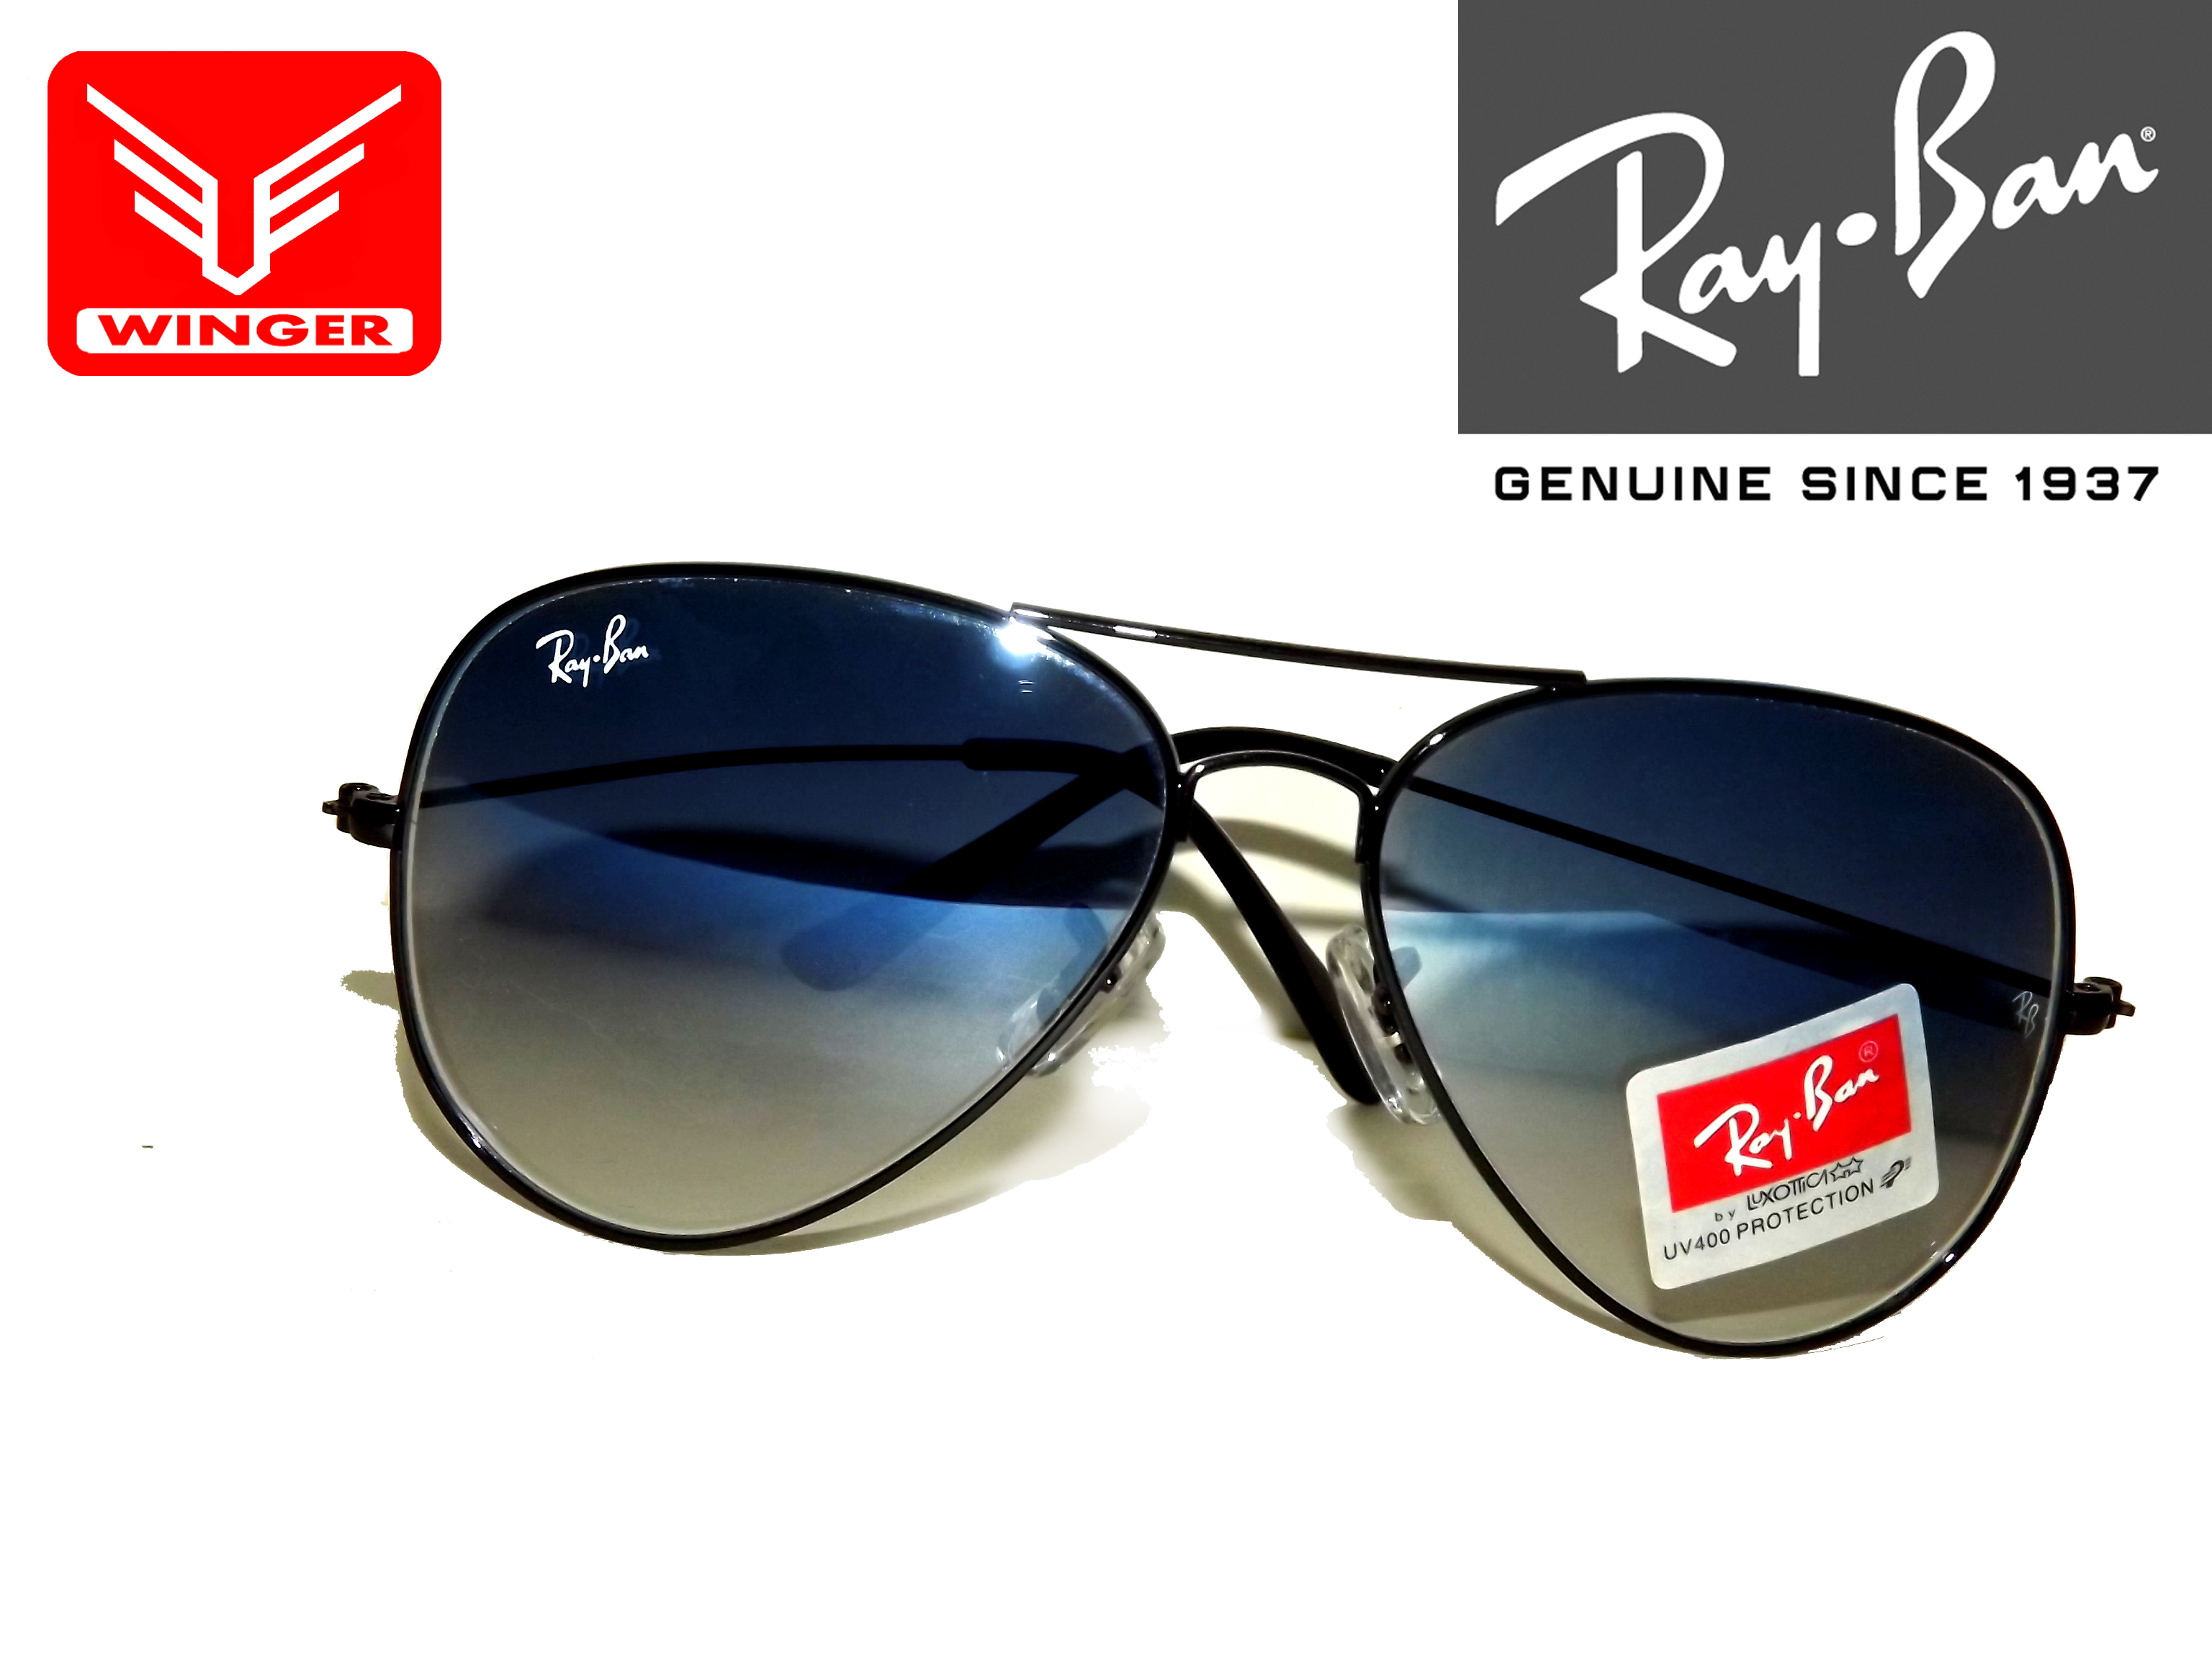 ray ban genuine since 1937 fiyat